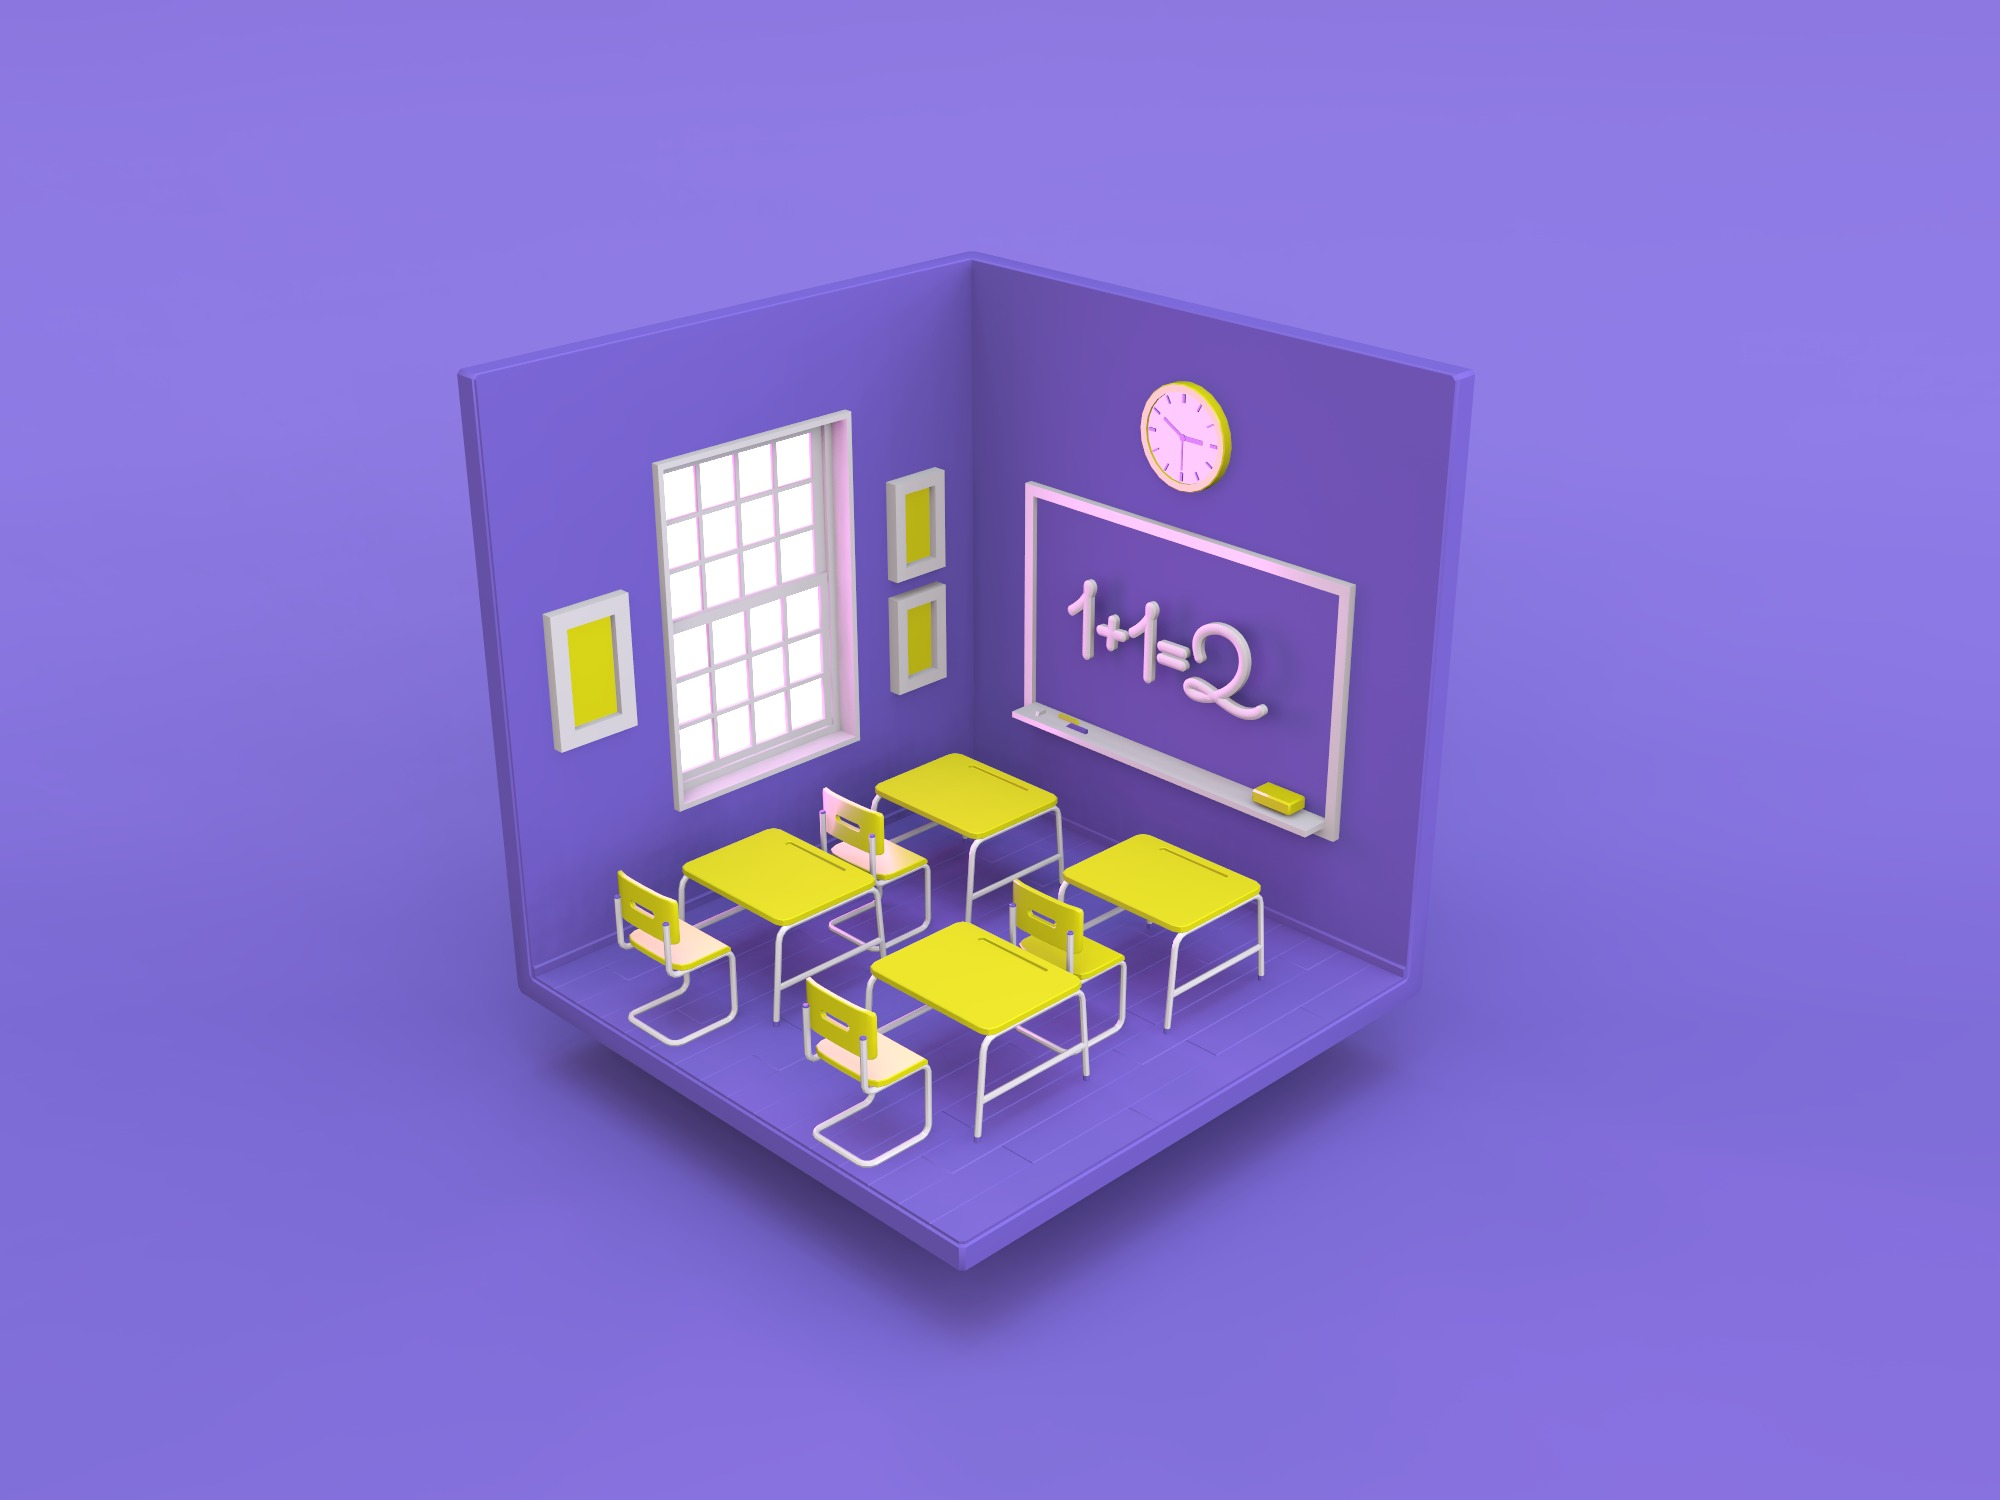 Isometric classroom - change the color and materials - 3D design by Vectary templates on Jun 5, 2018